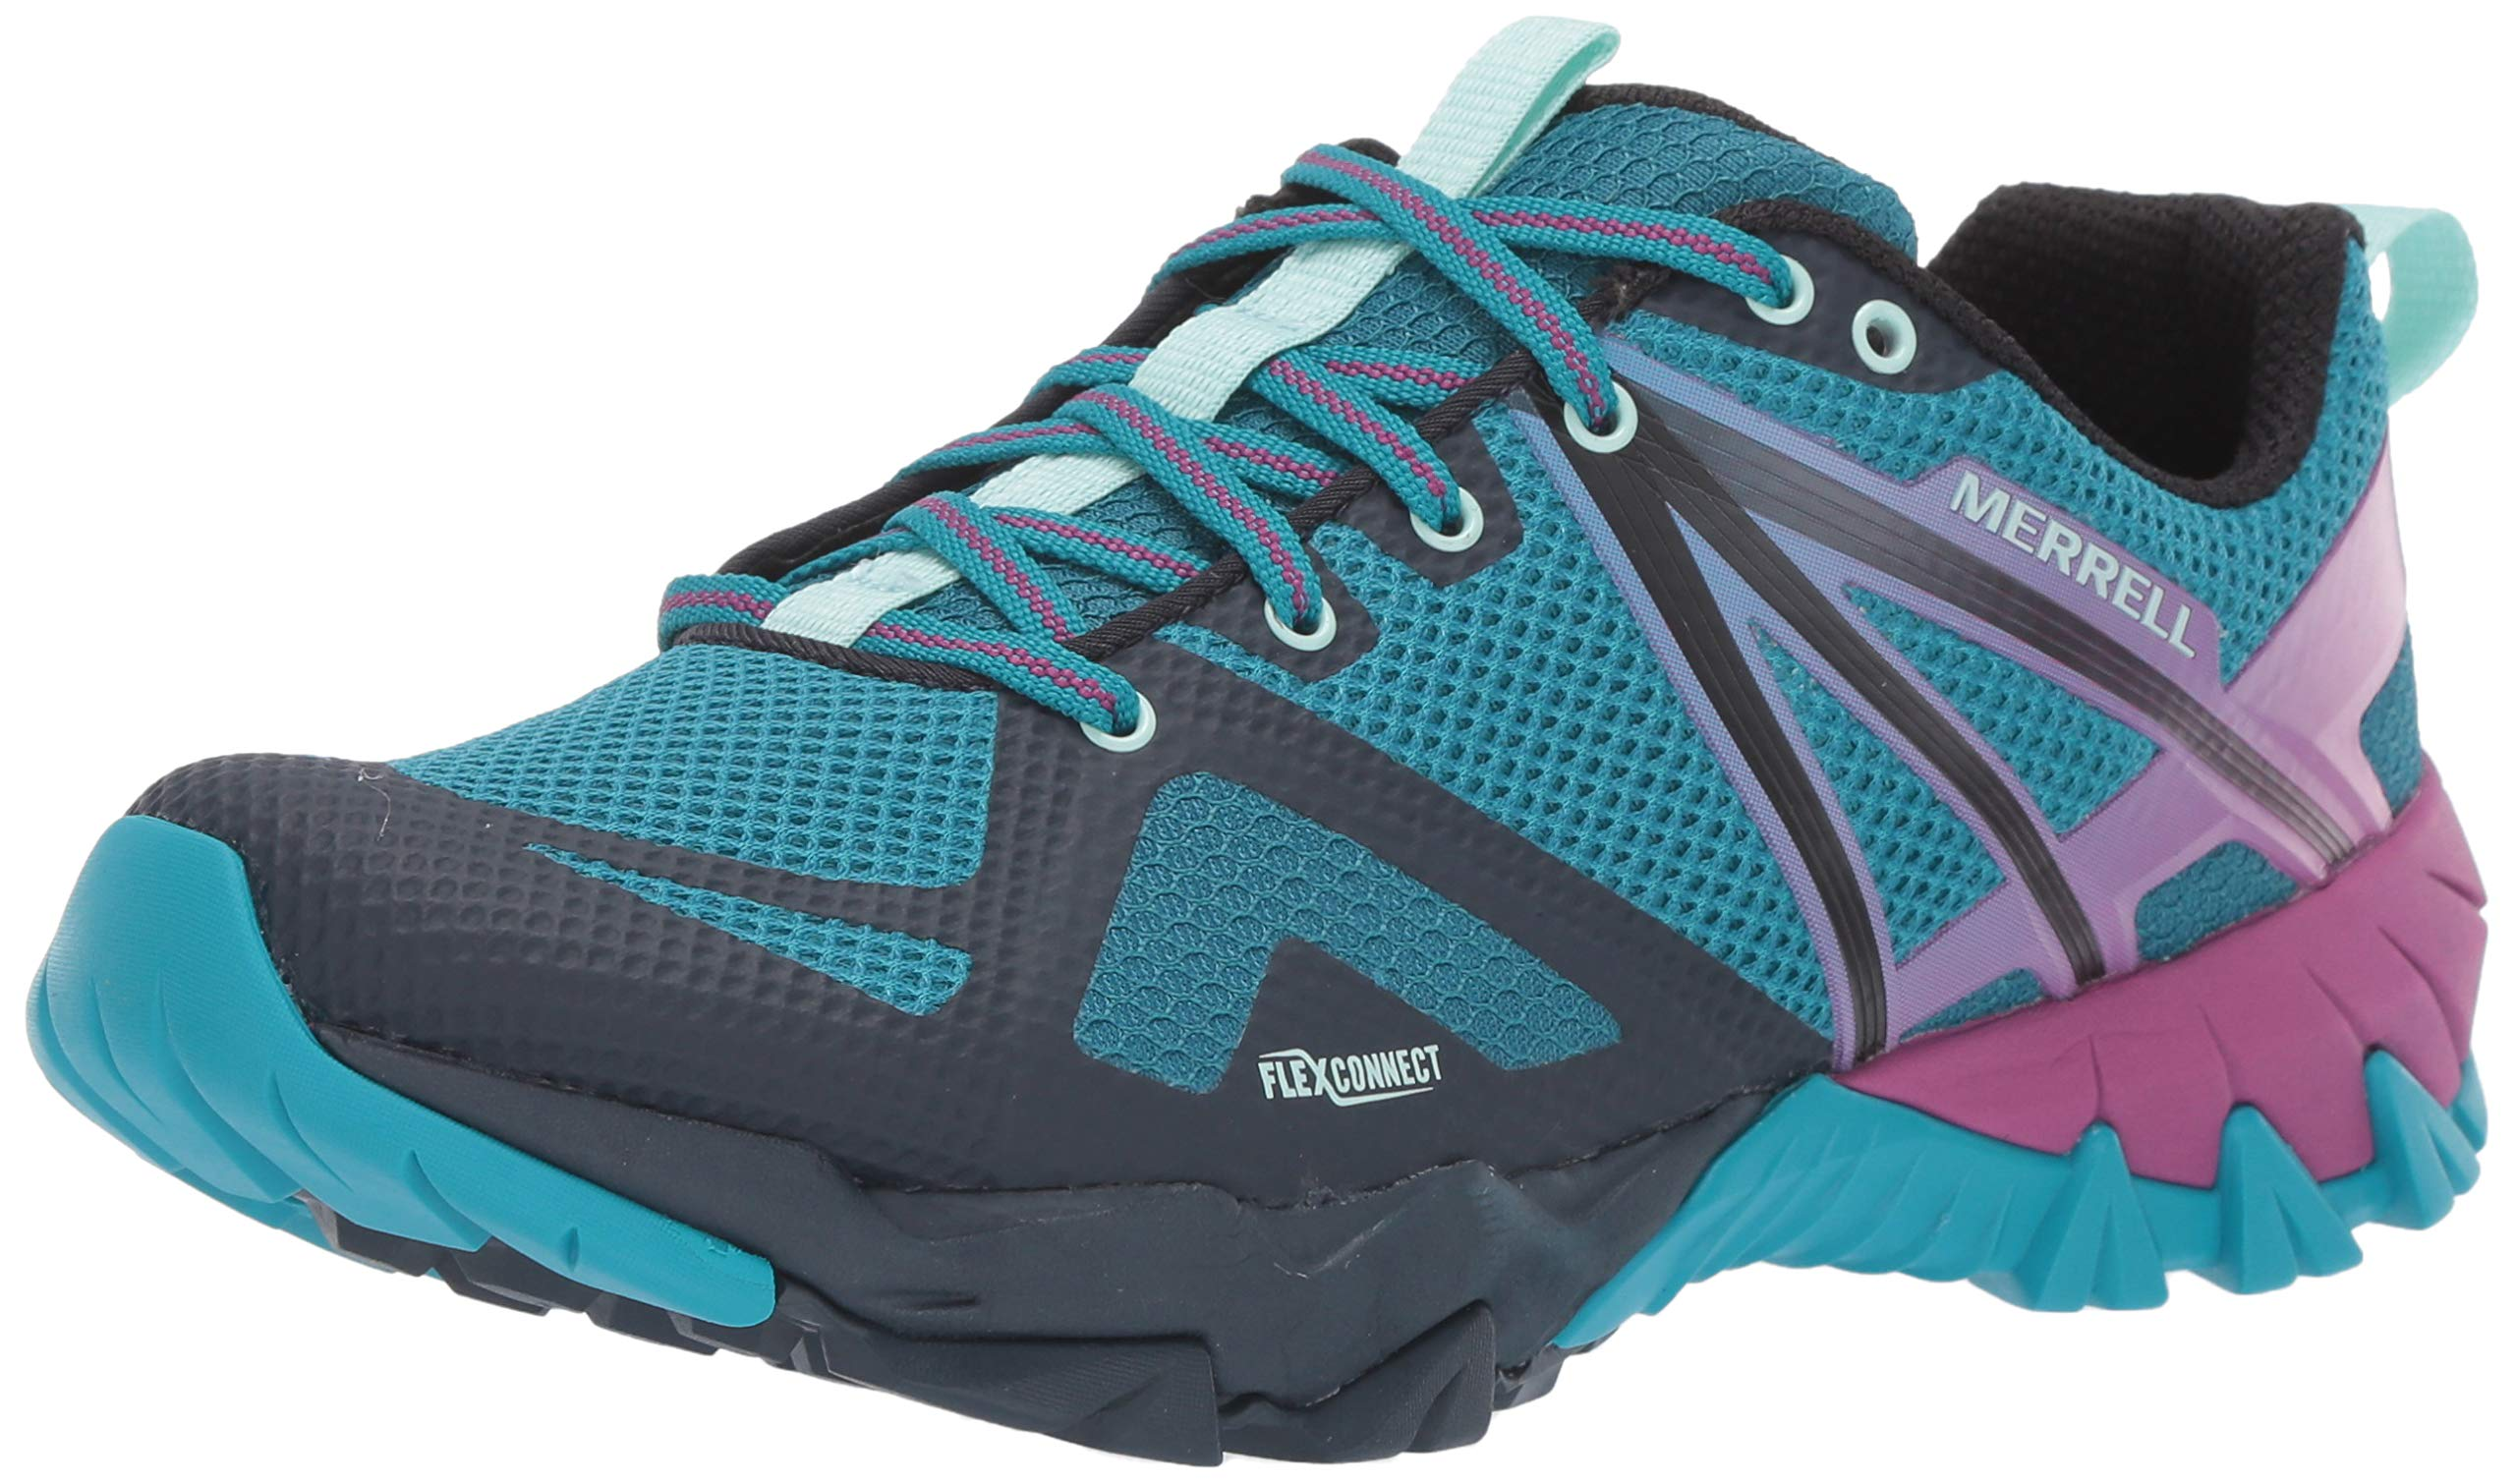 Merrell Women's MQM Flex Hiking Shoe, Ocean Depth 09.0 M US